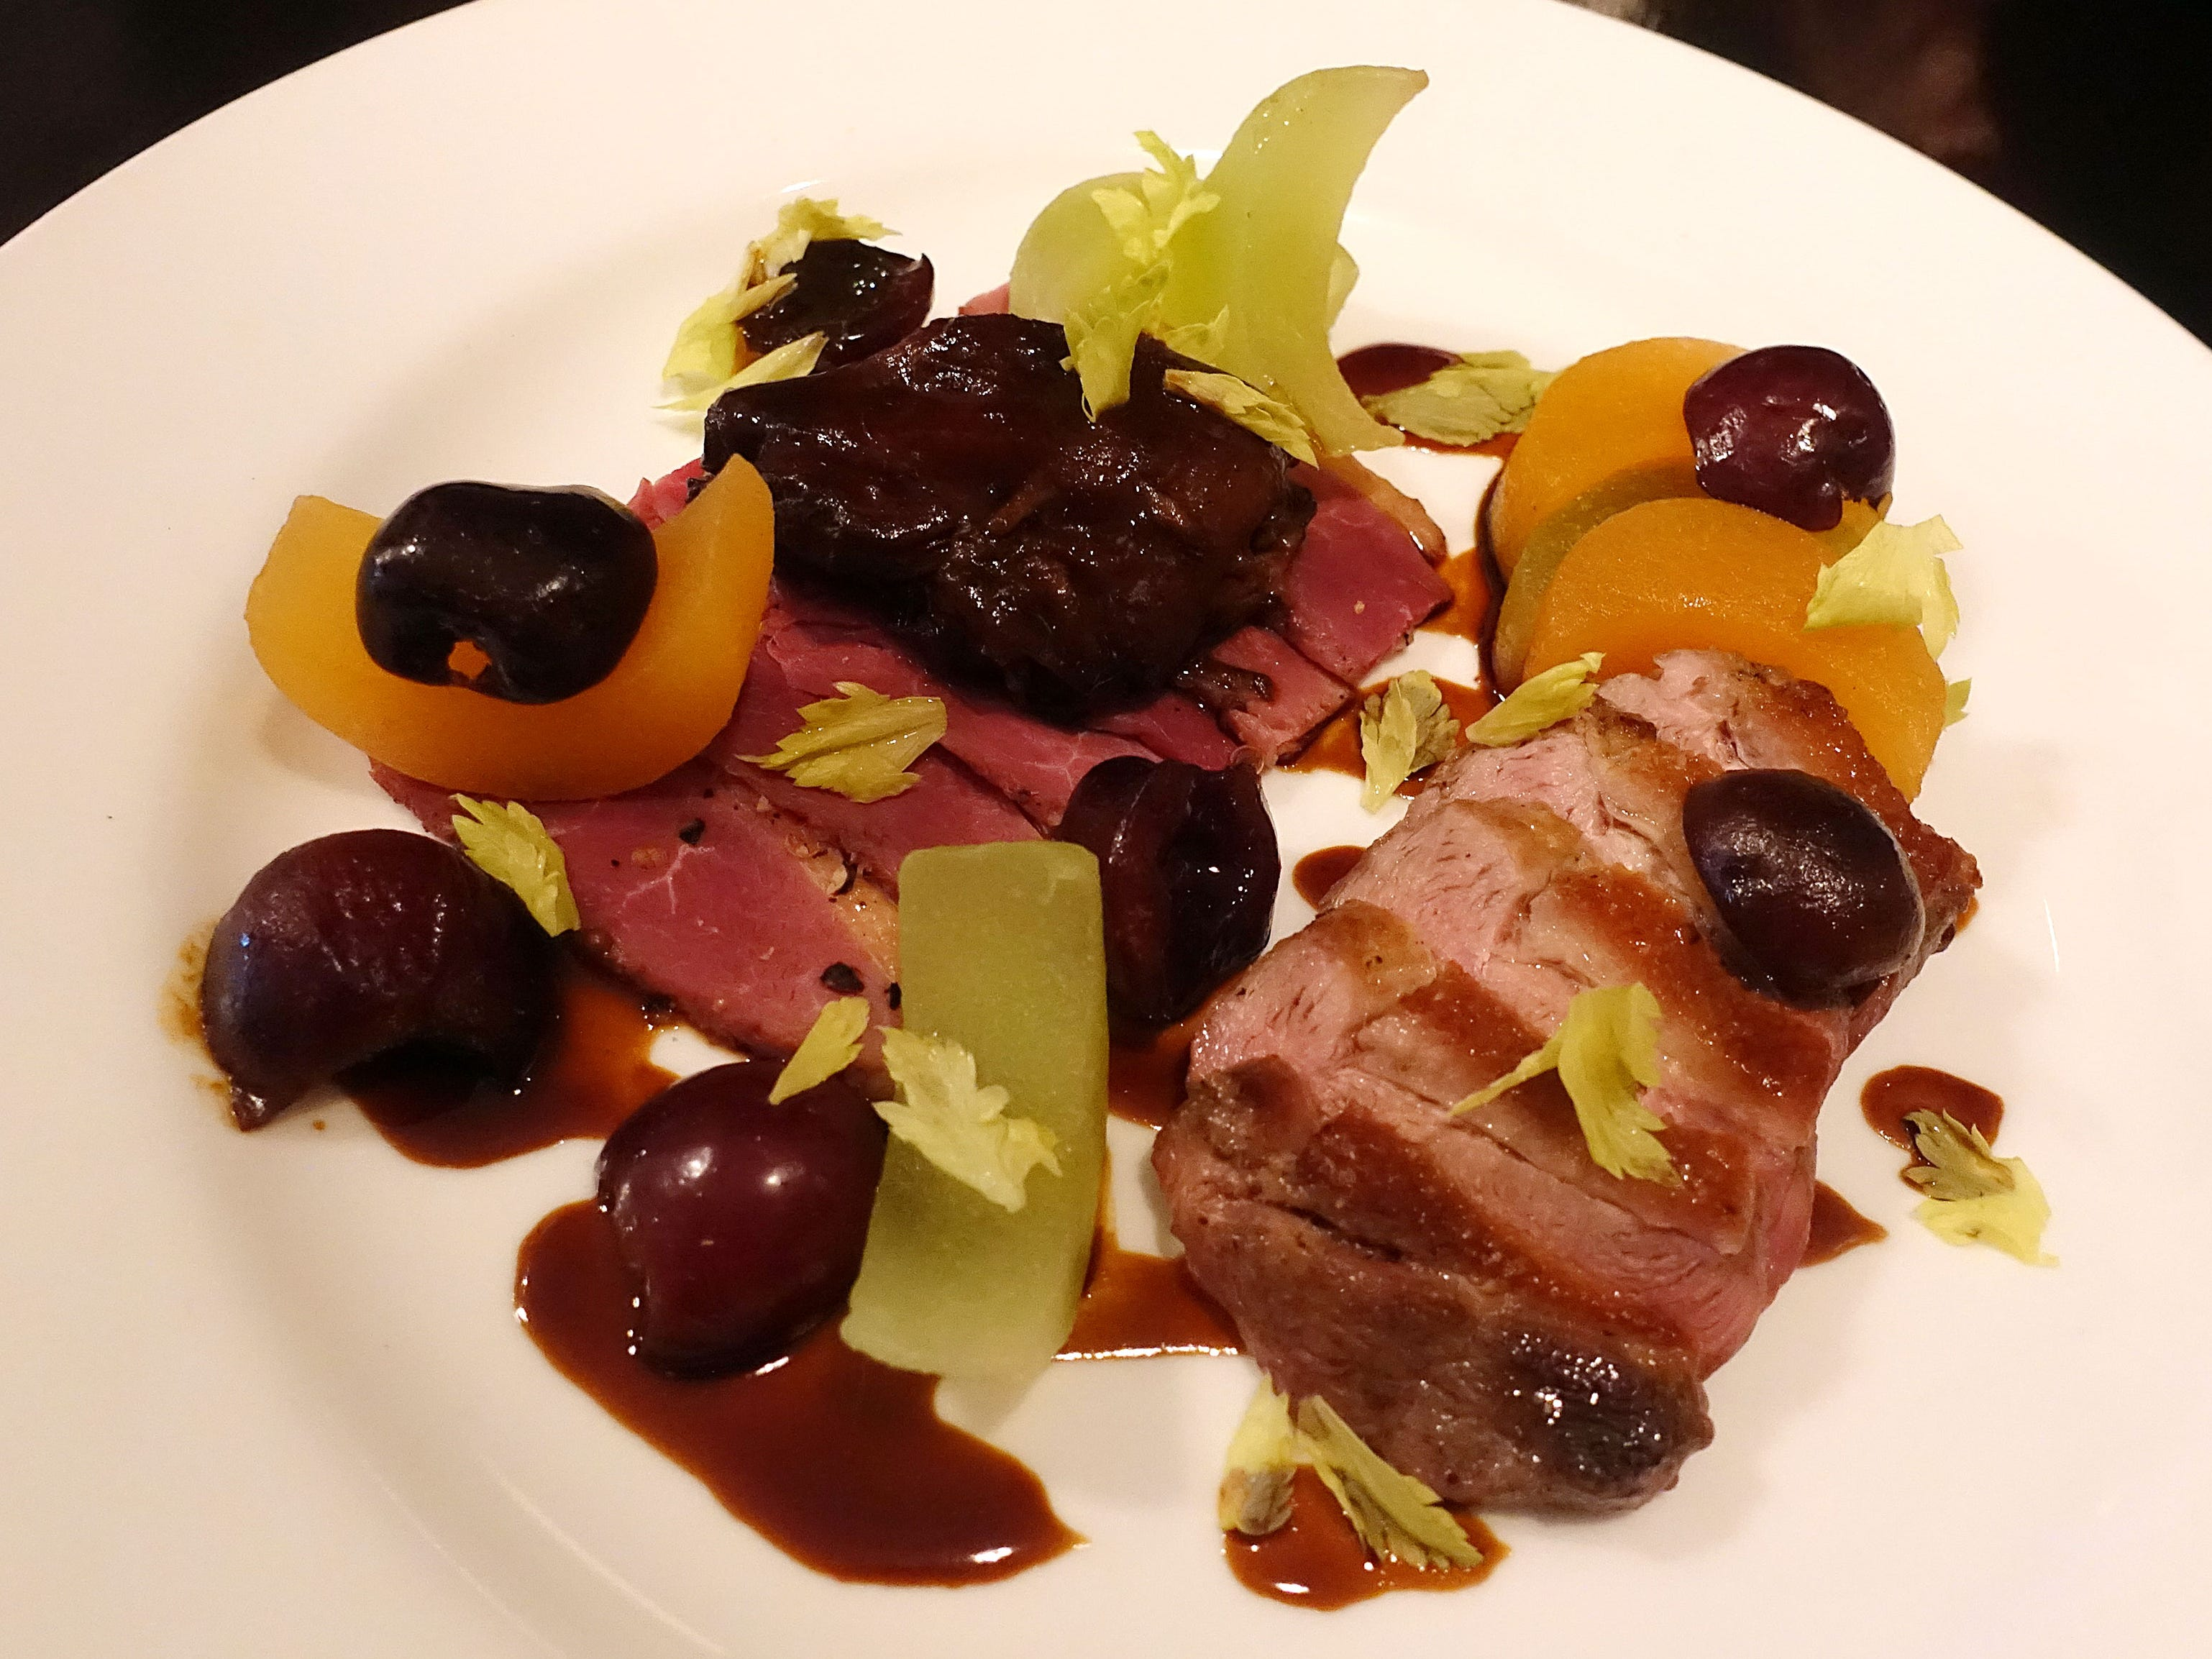 Duclair duck with seared breast, pastrami, braised leg, cherry, arugula, melon and hibiscus at Confluence in Carefree.